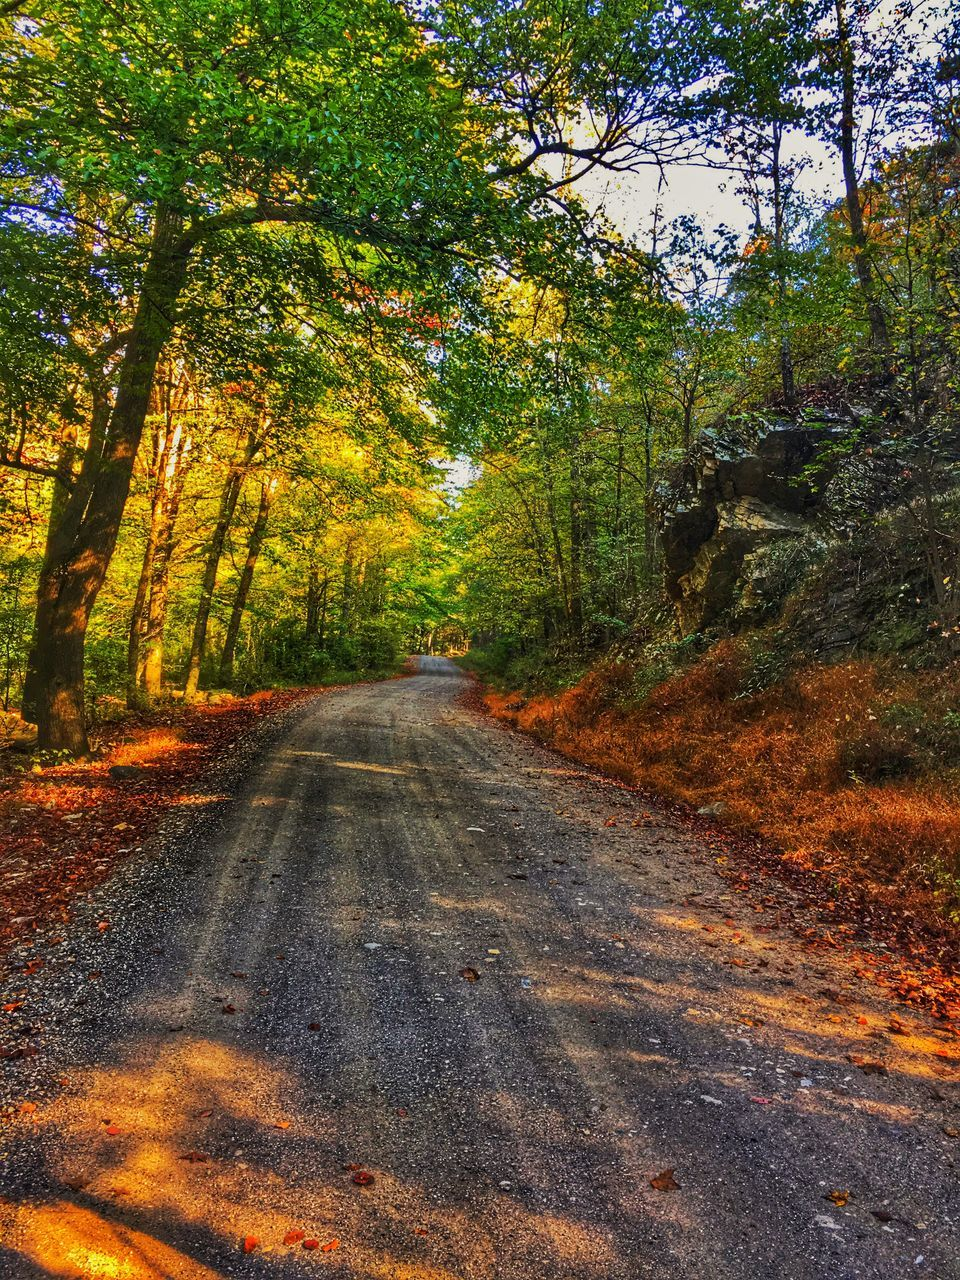 tree, the way forward, road, nature, forest, diminishing perspective, autumn, day, tranquility, no people, tranquil scene, beauty in nature, scenics, outdoors, leaf, growth, landscape, branch, sky